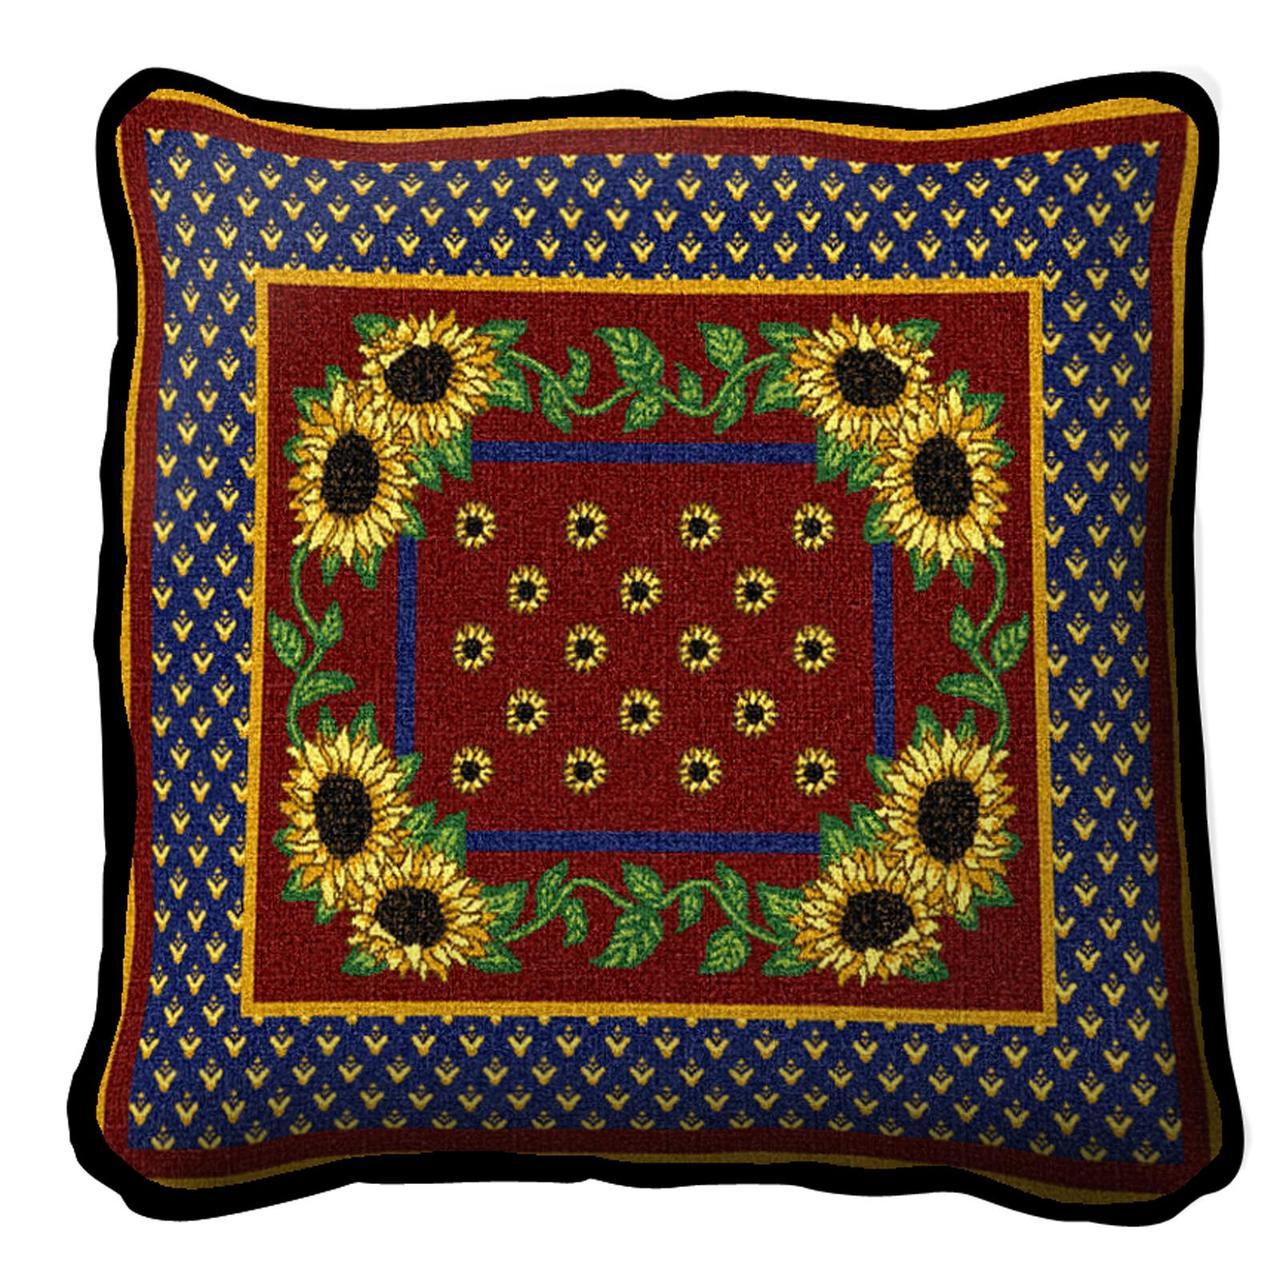 Throw Pillow-17 x 17-The Cozy Home-Sunflower Splendor